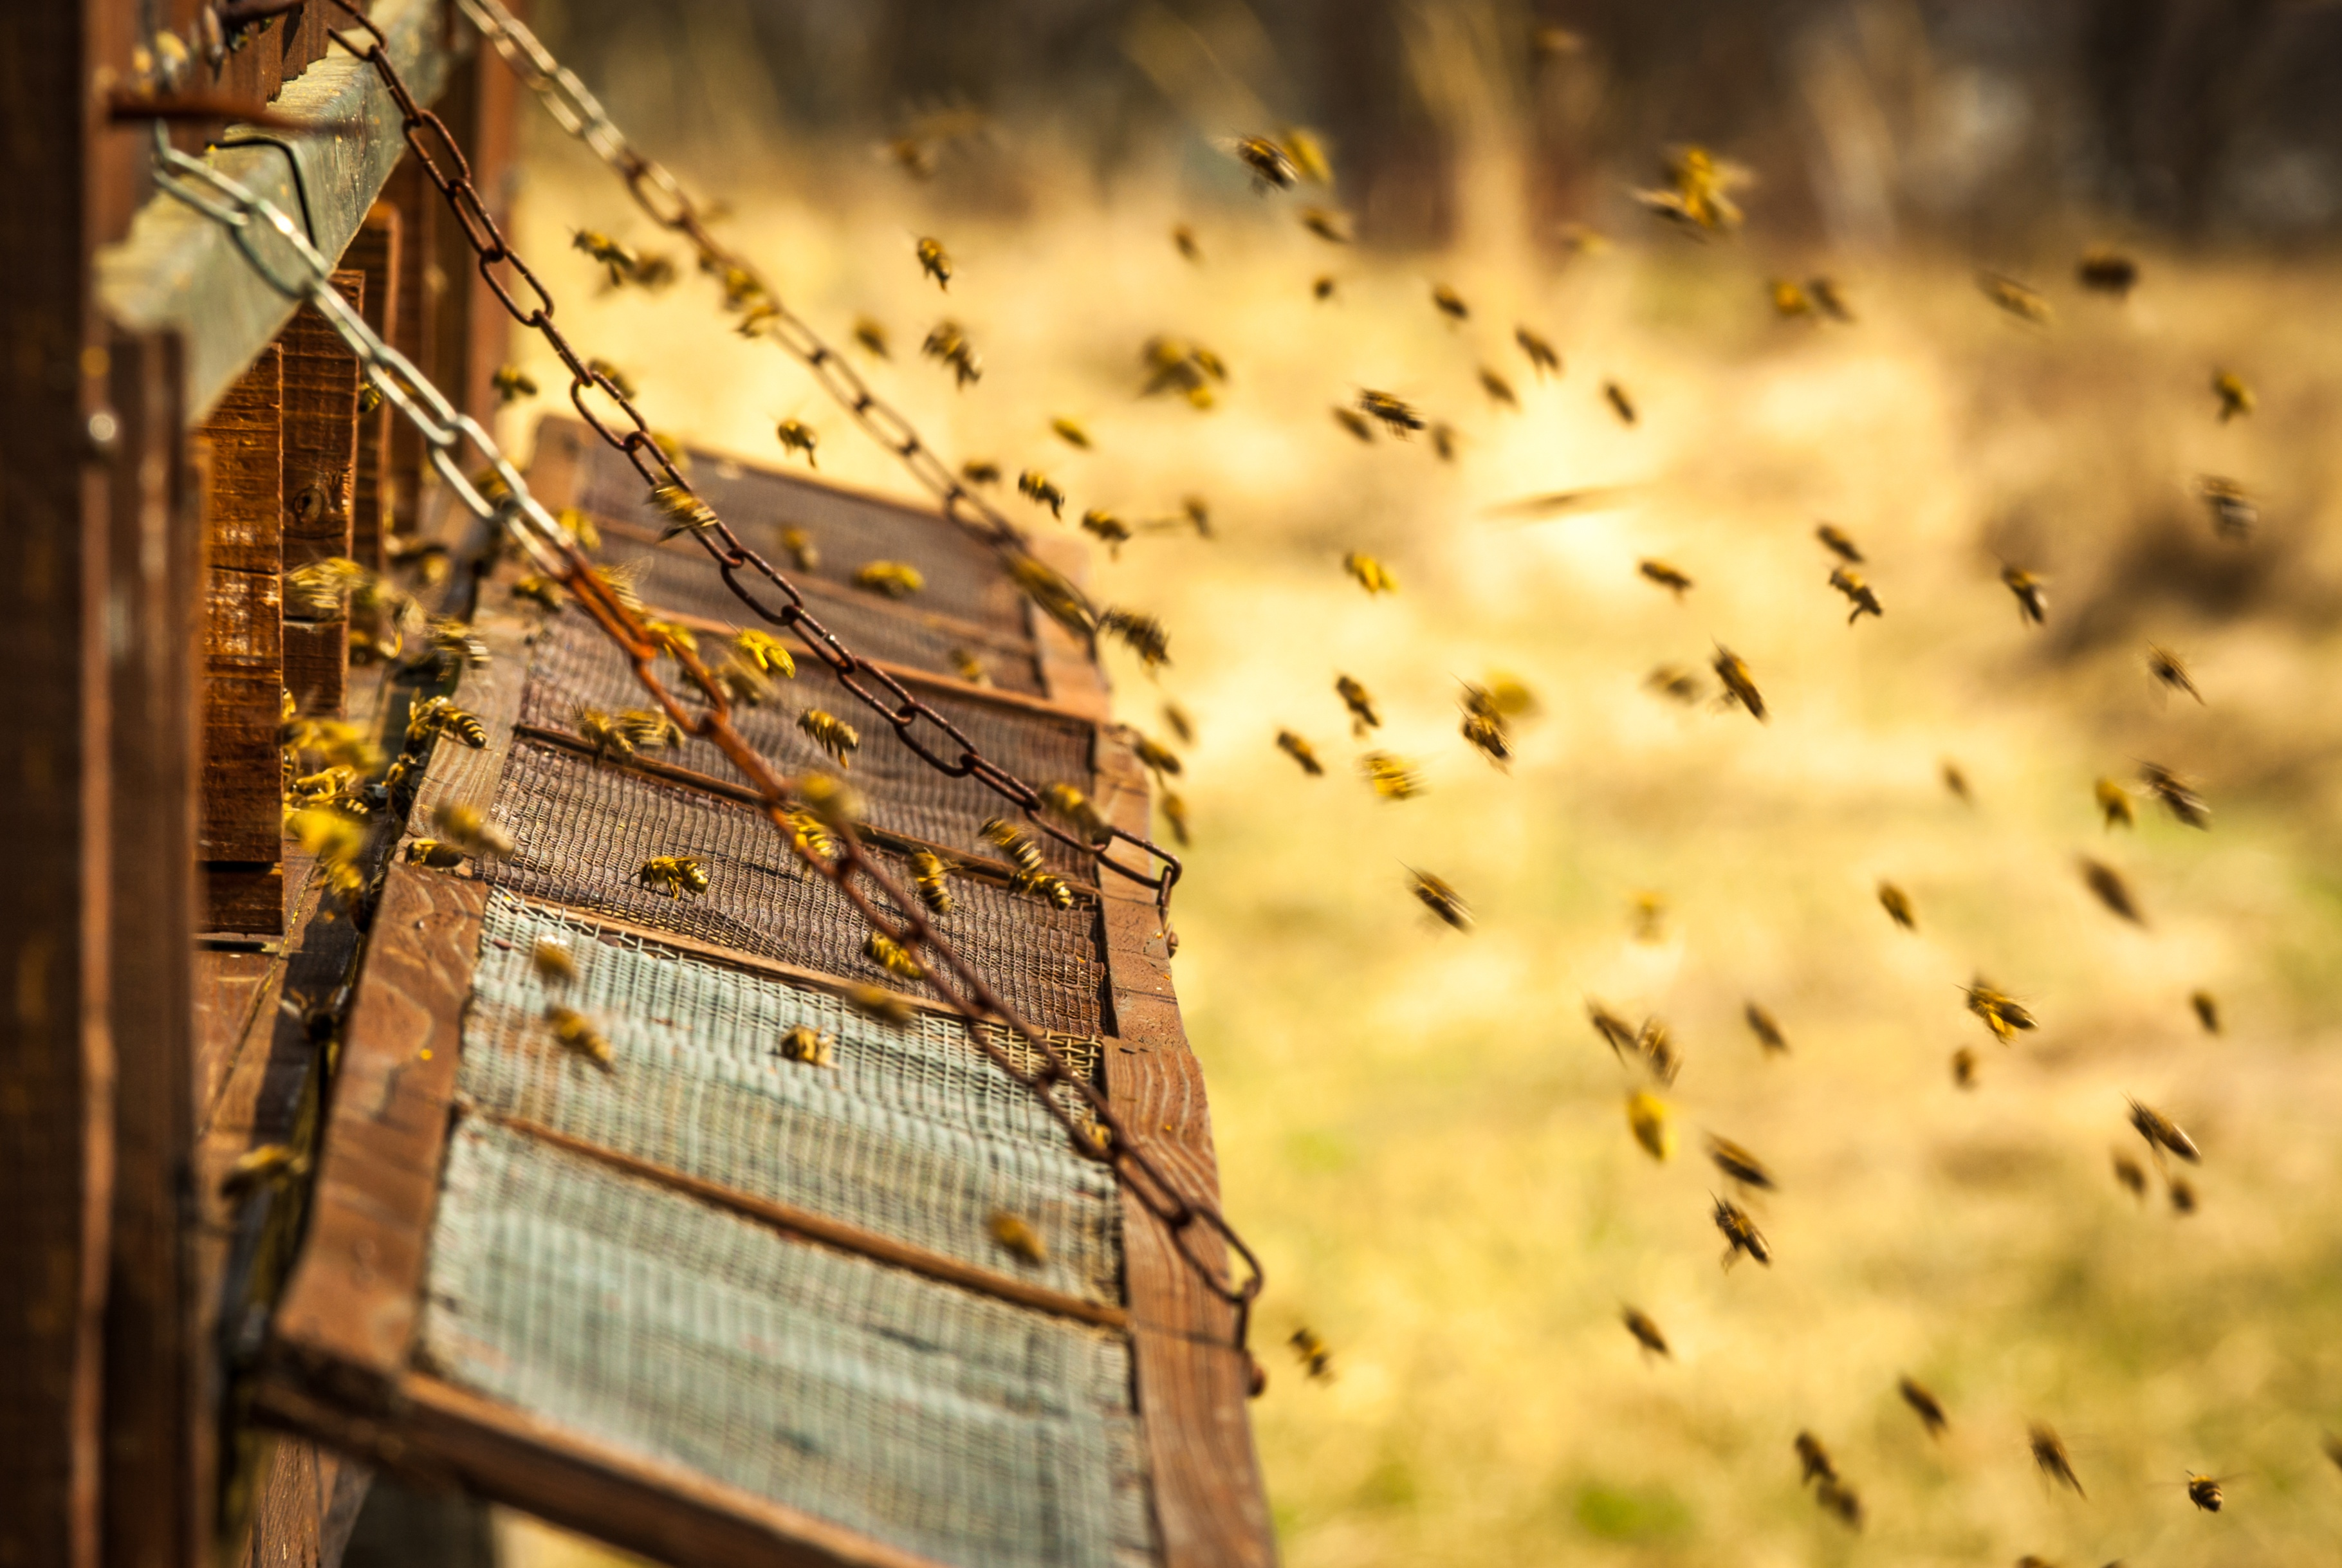 Web2Print: A Hive for the Busiest of Bees